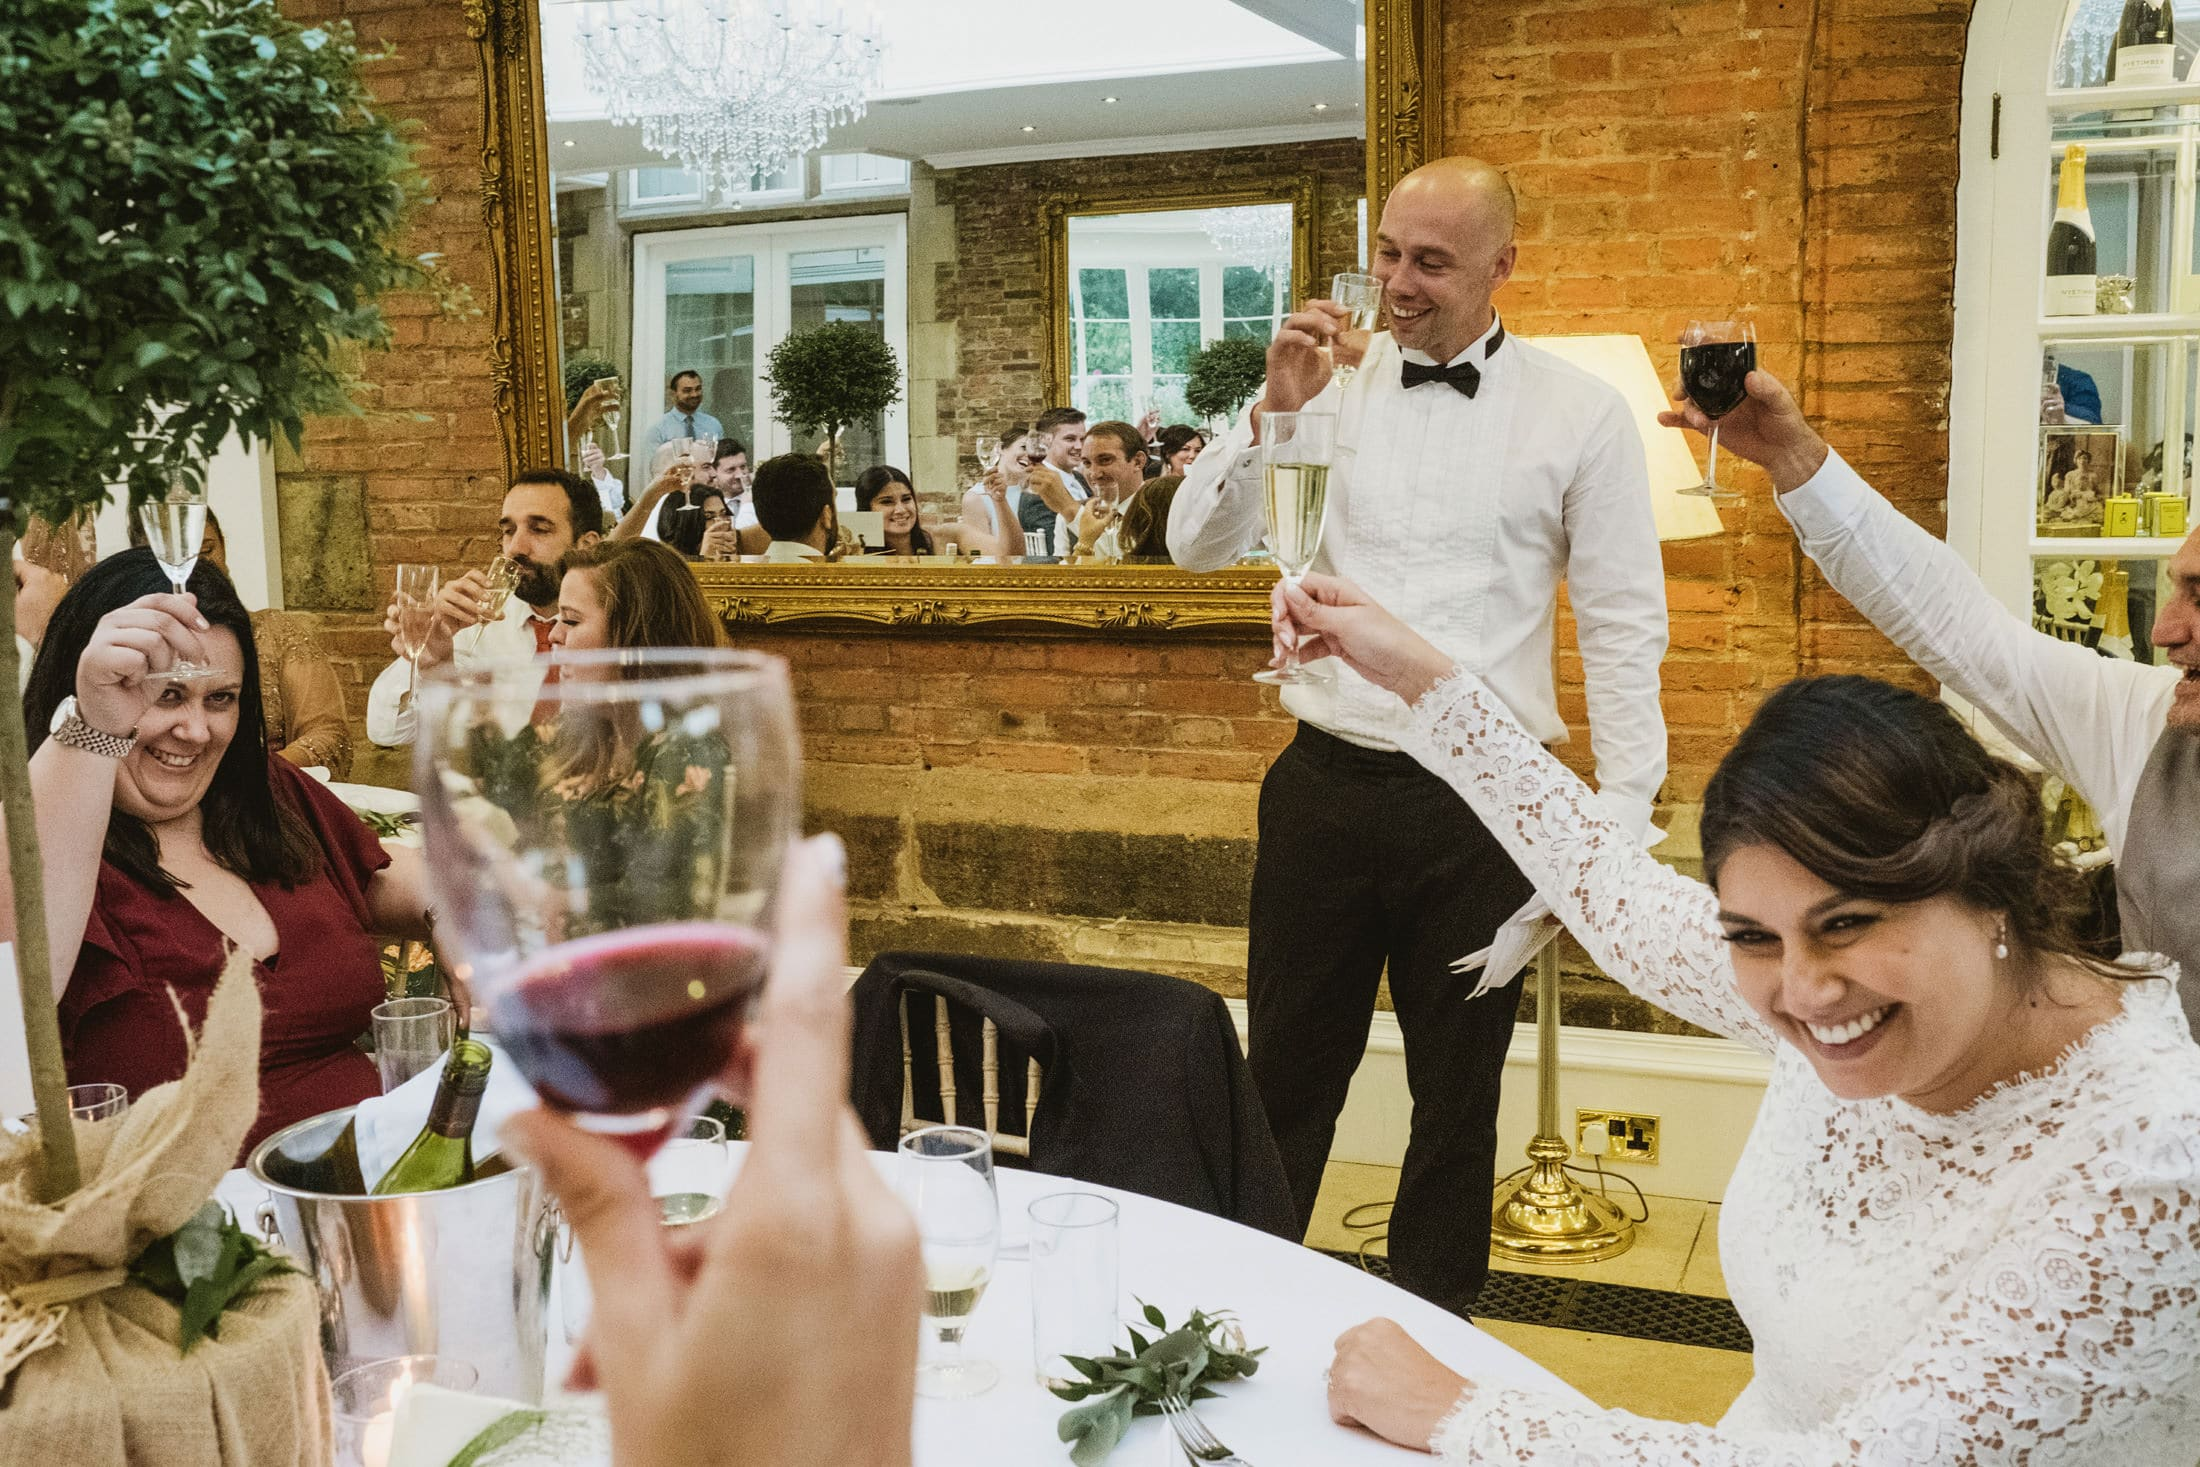 Cheers! Wedding celebrations at Goldsborough Hall